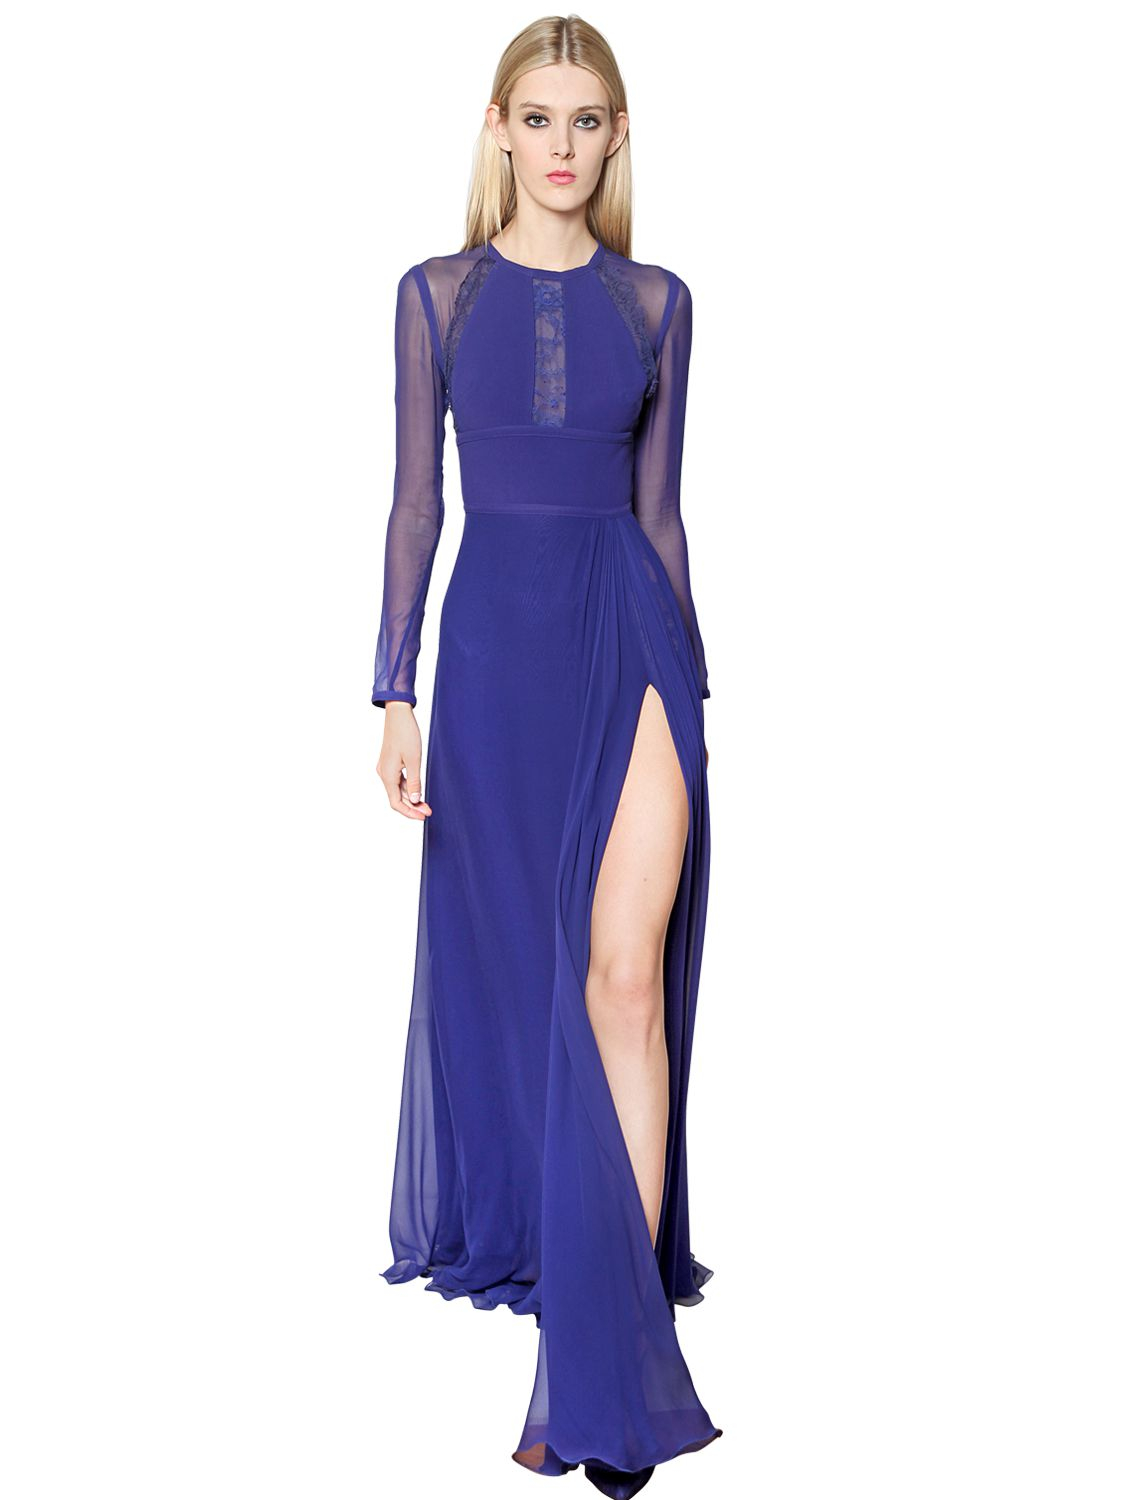 Elie saab Silk Crepe Cady Georgette & Lace Dress in Blue | Lyst